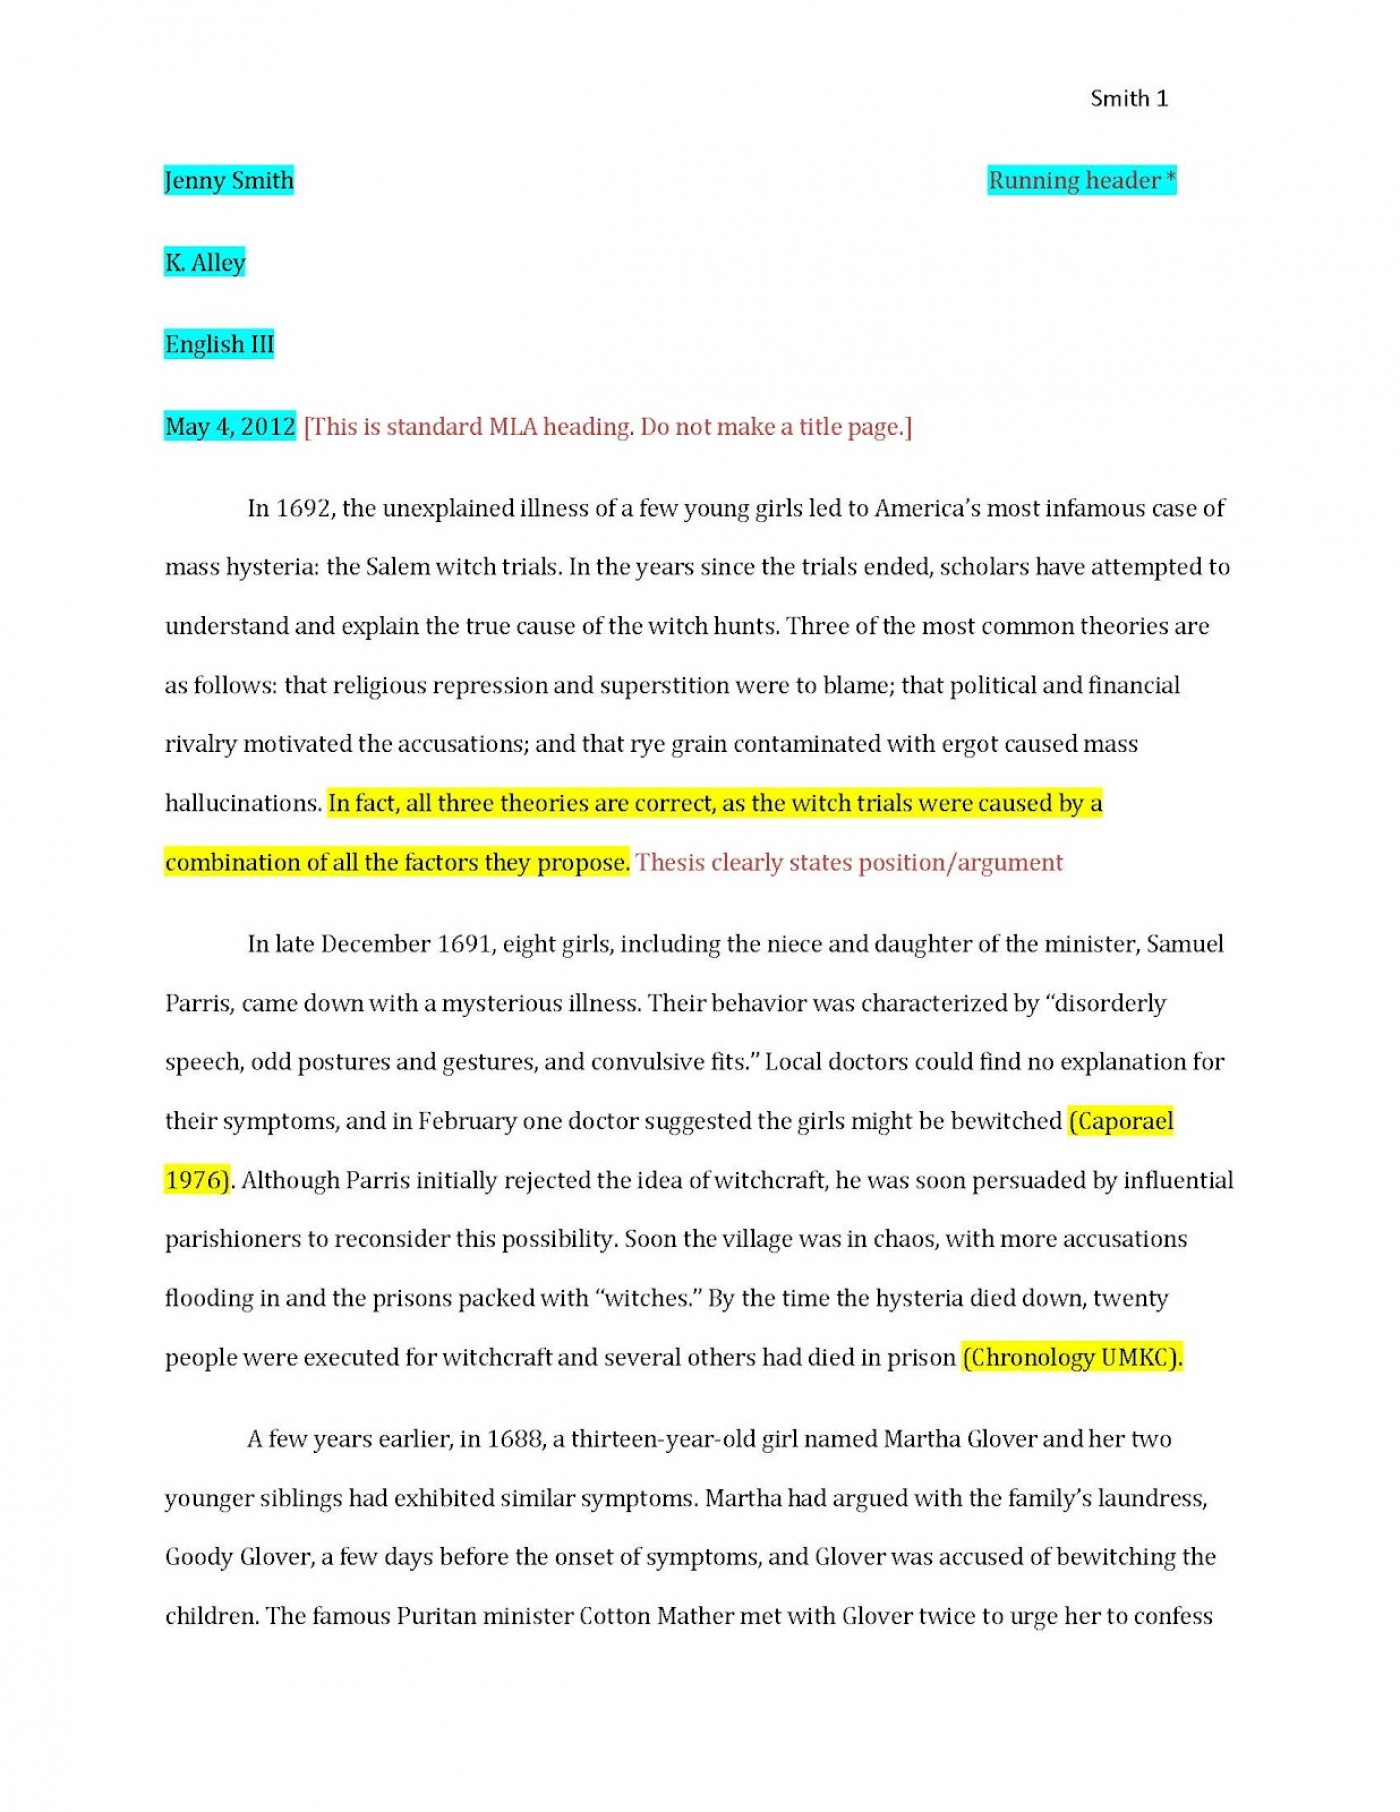 006 Examplepaper Page 1 Research Paper Citations Amazing For How To Make Bibliography Do Write 1400